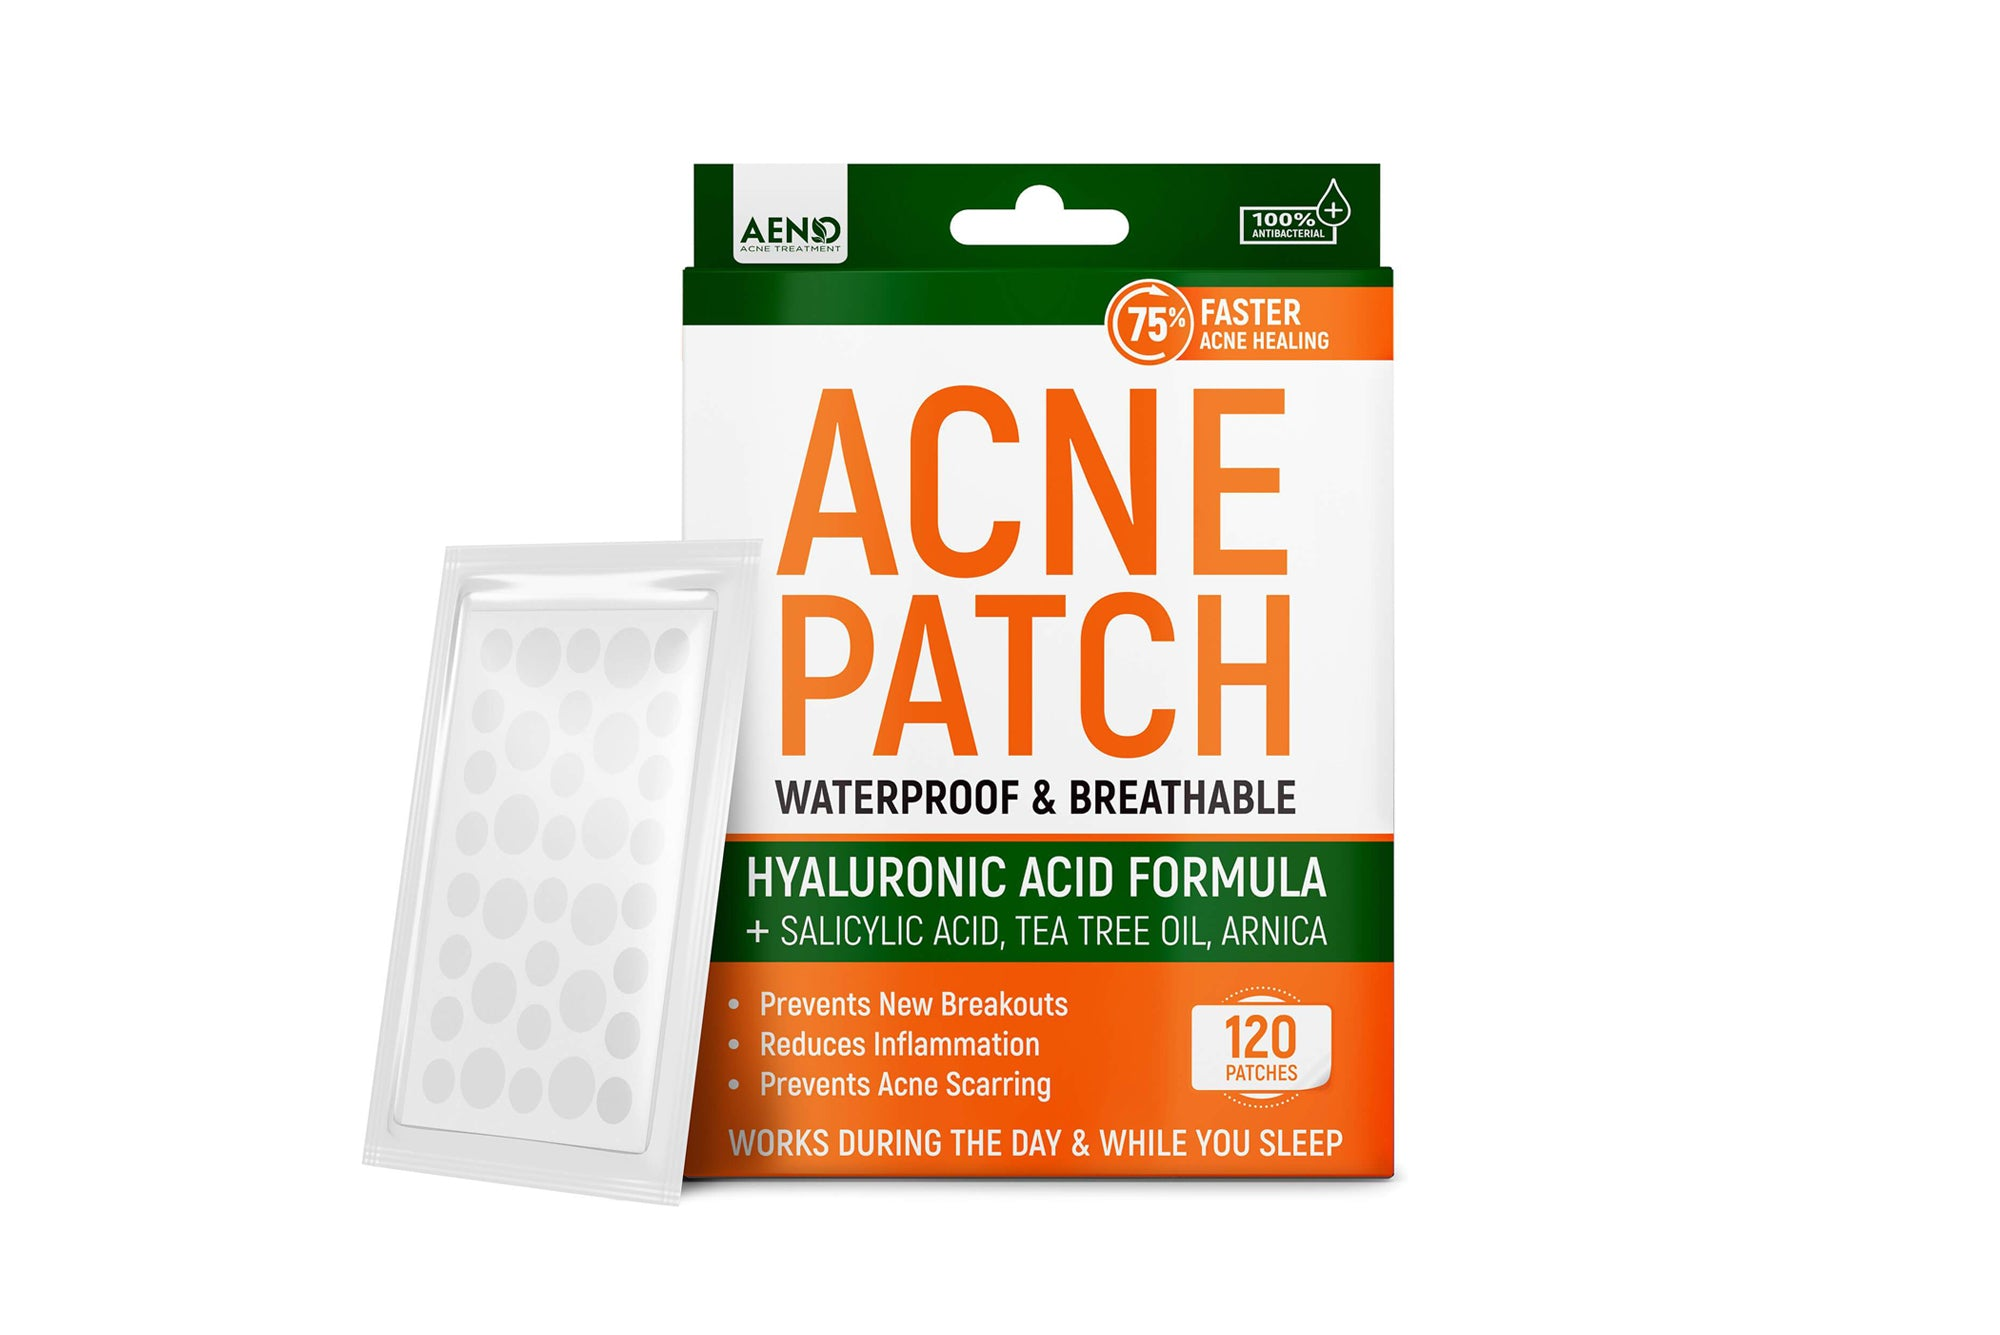 acne patches from aeno